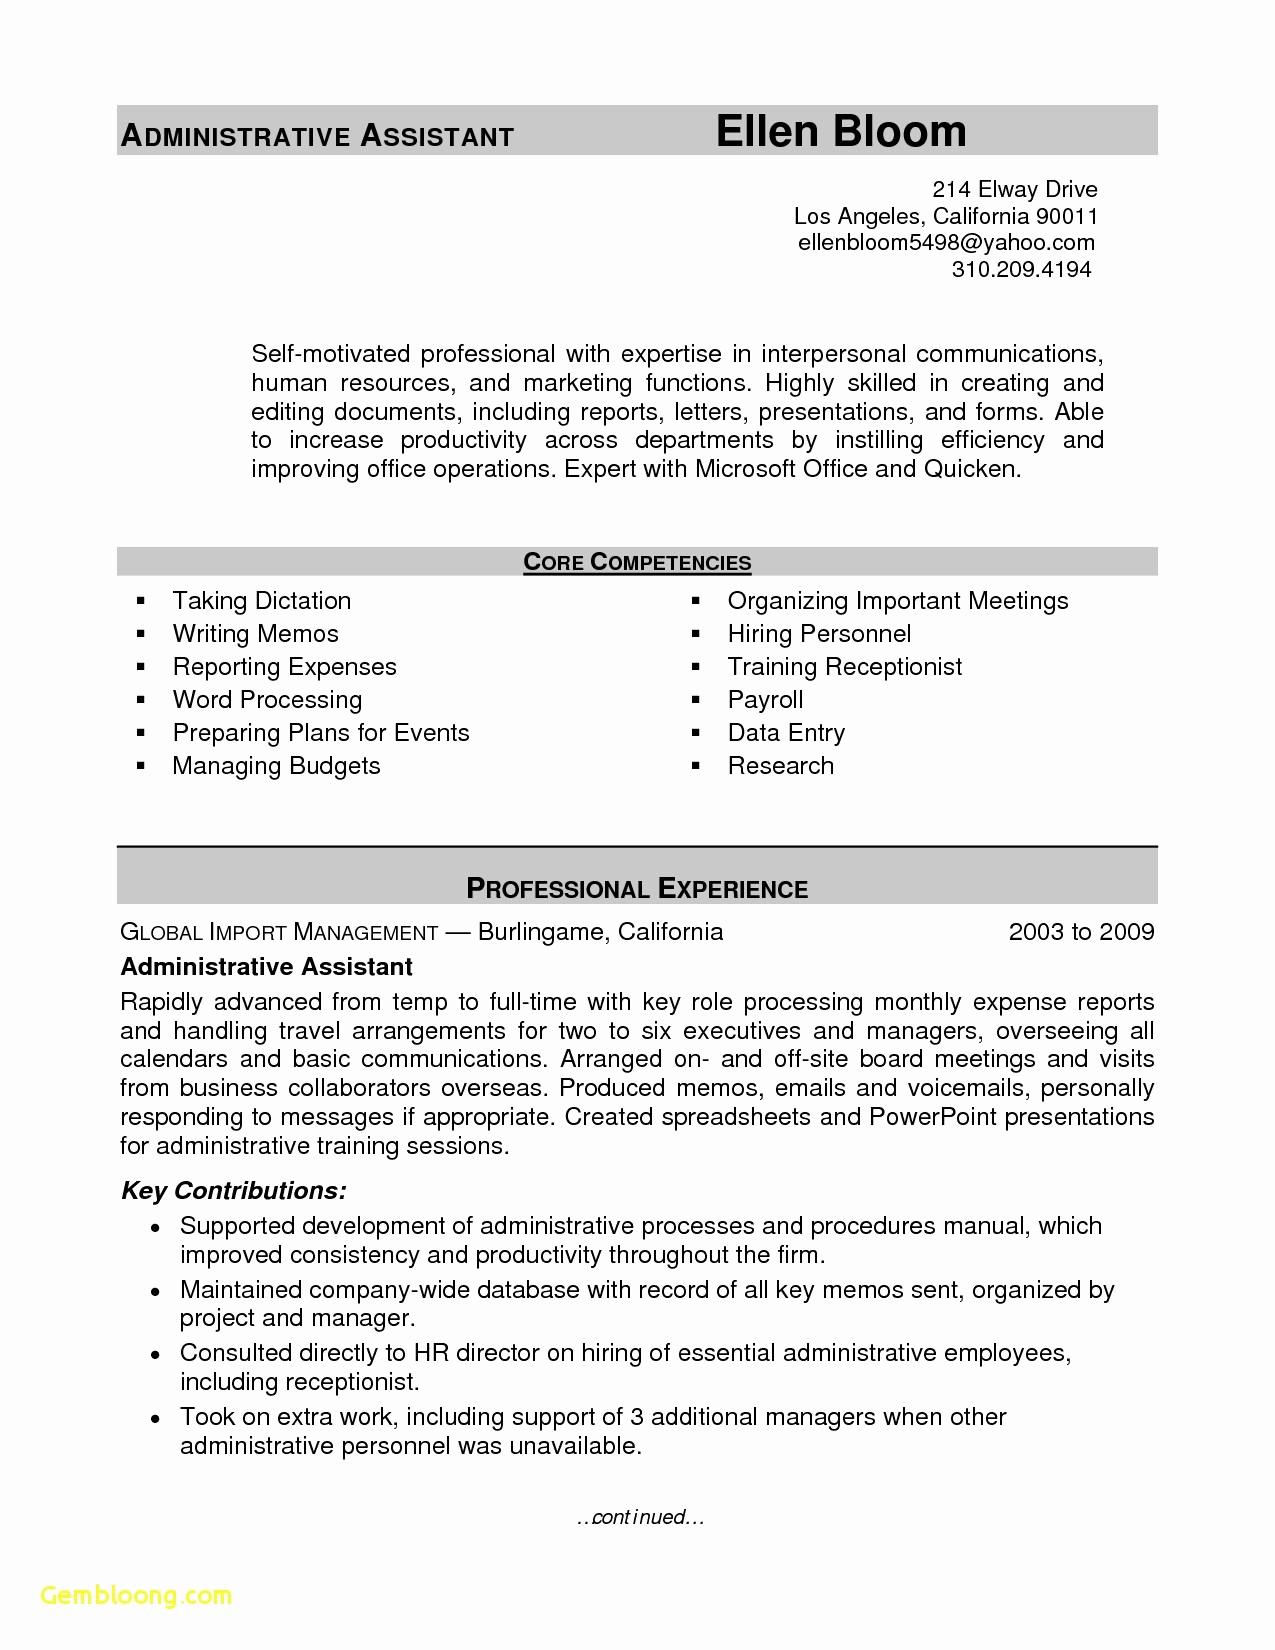 Hr Resume Template - Resume Sample for Hr Manager Elegant Hr Manager Resume New American